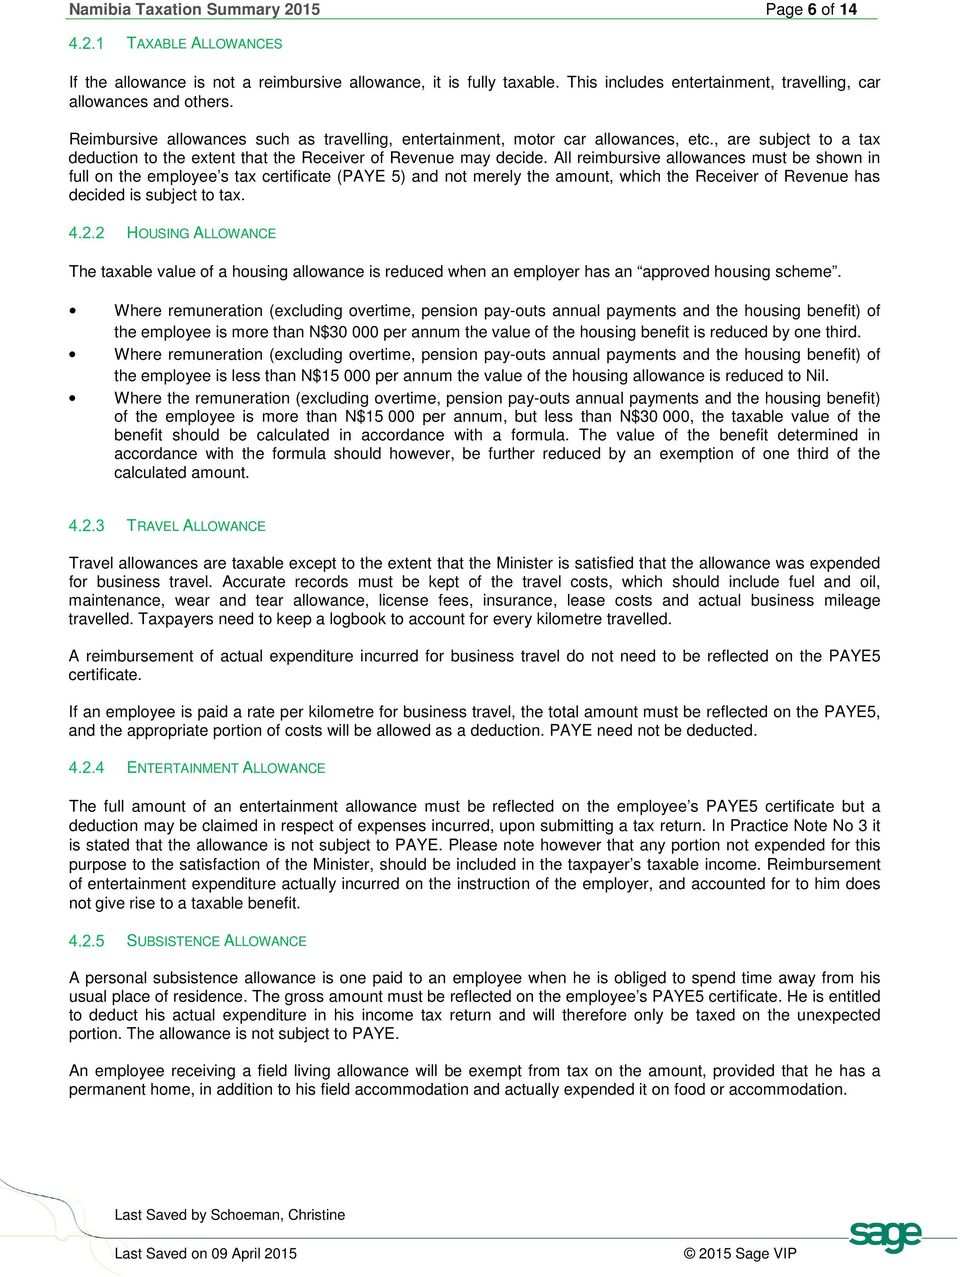 Namibia Taxation Summary 2015 Page 1 of 14  Sage HR Africa